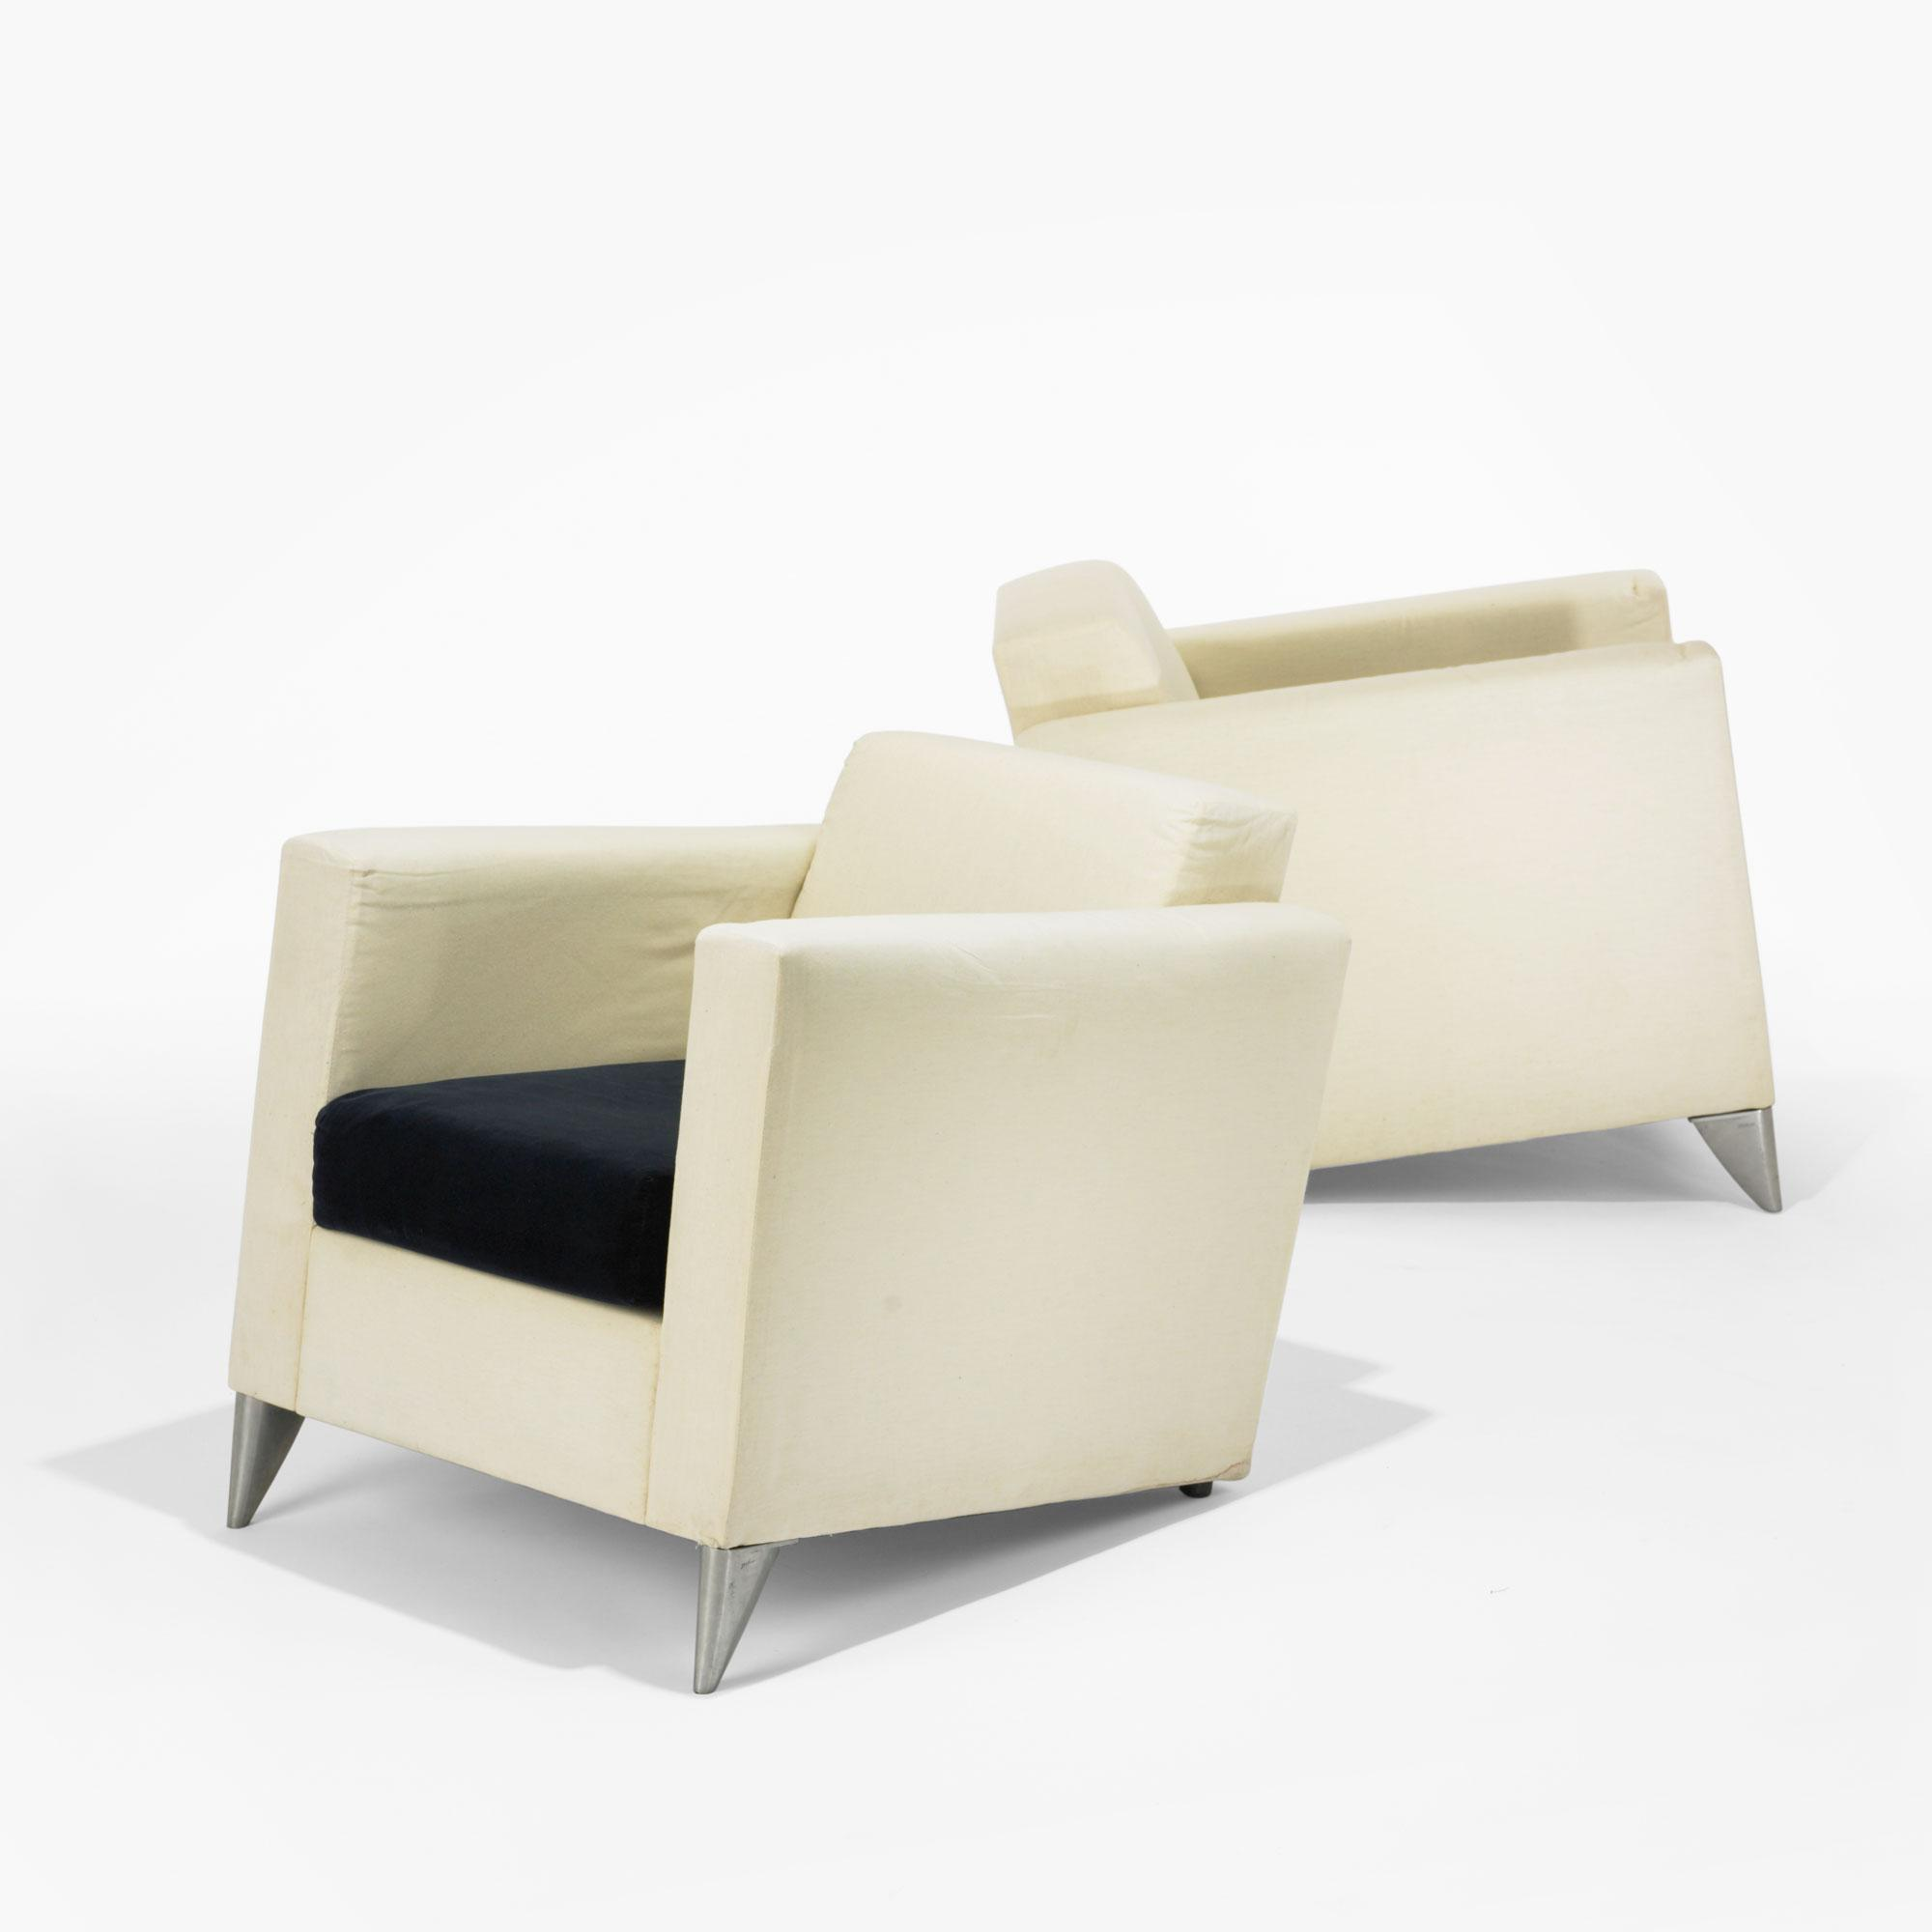 Philippe Starck Len philippe starck pair of len niggelman lounge chairs from the